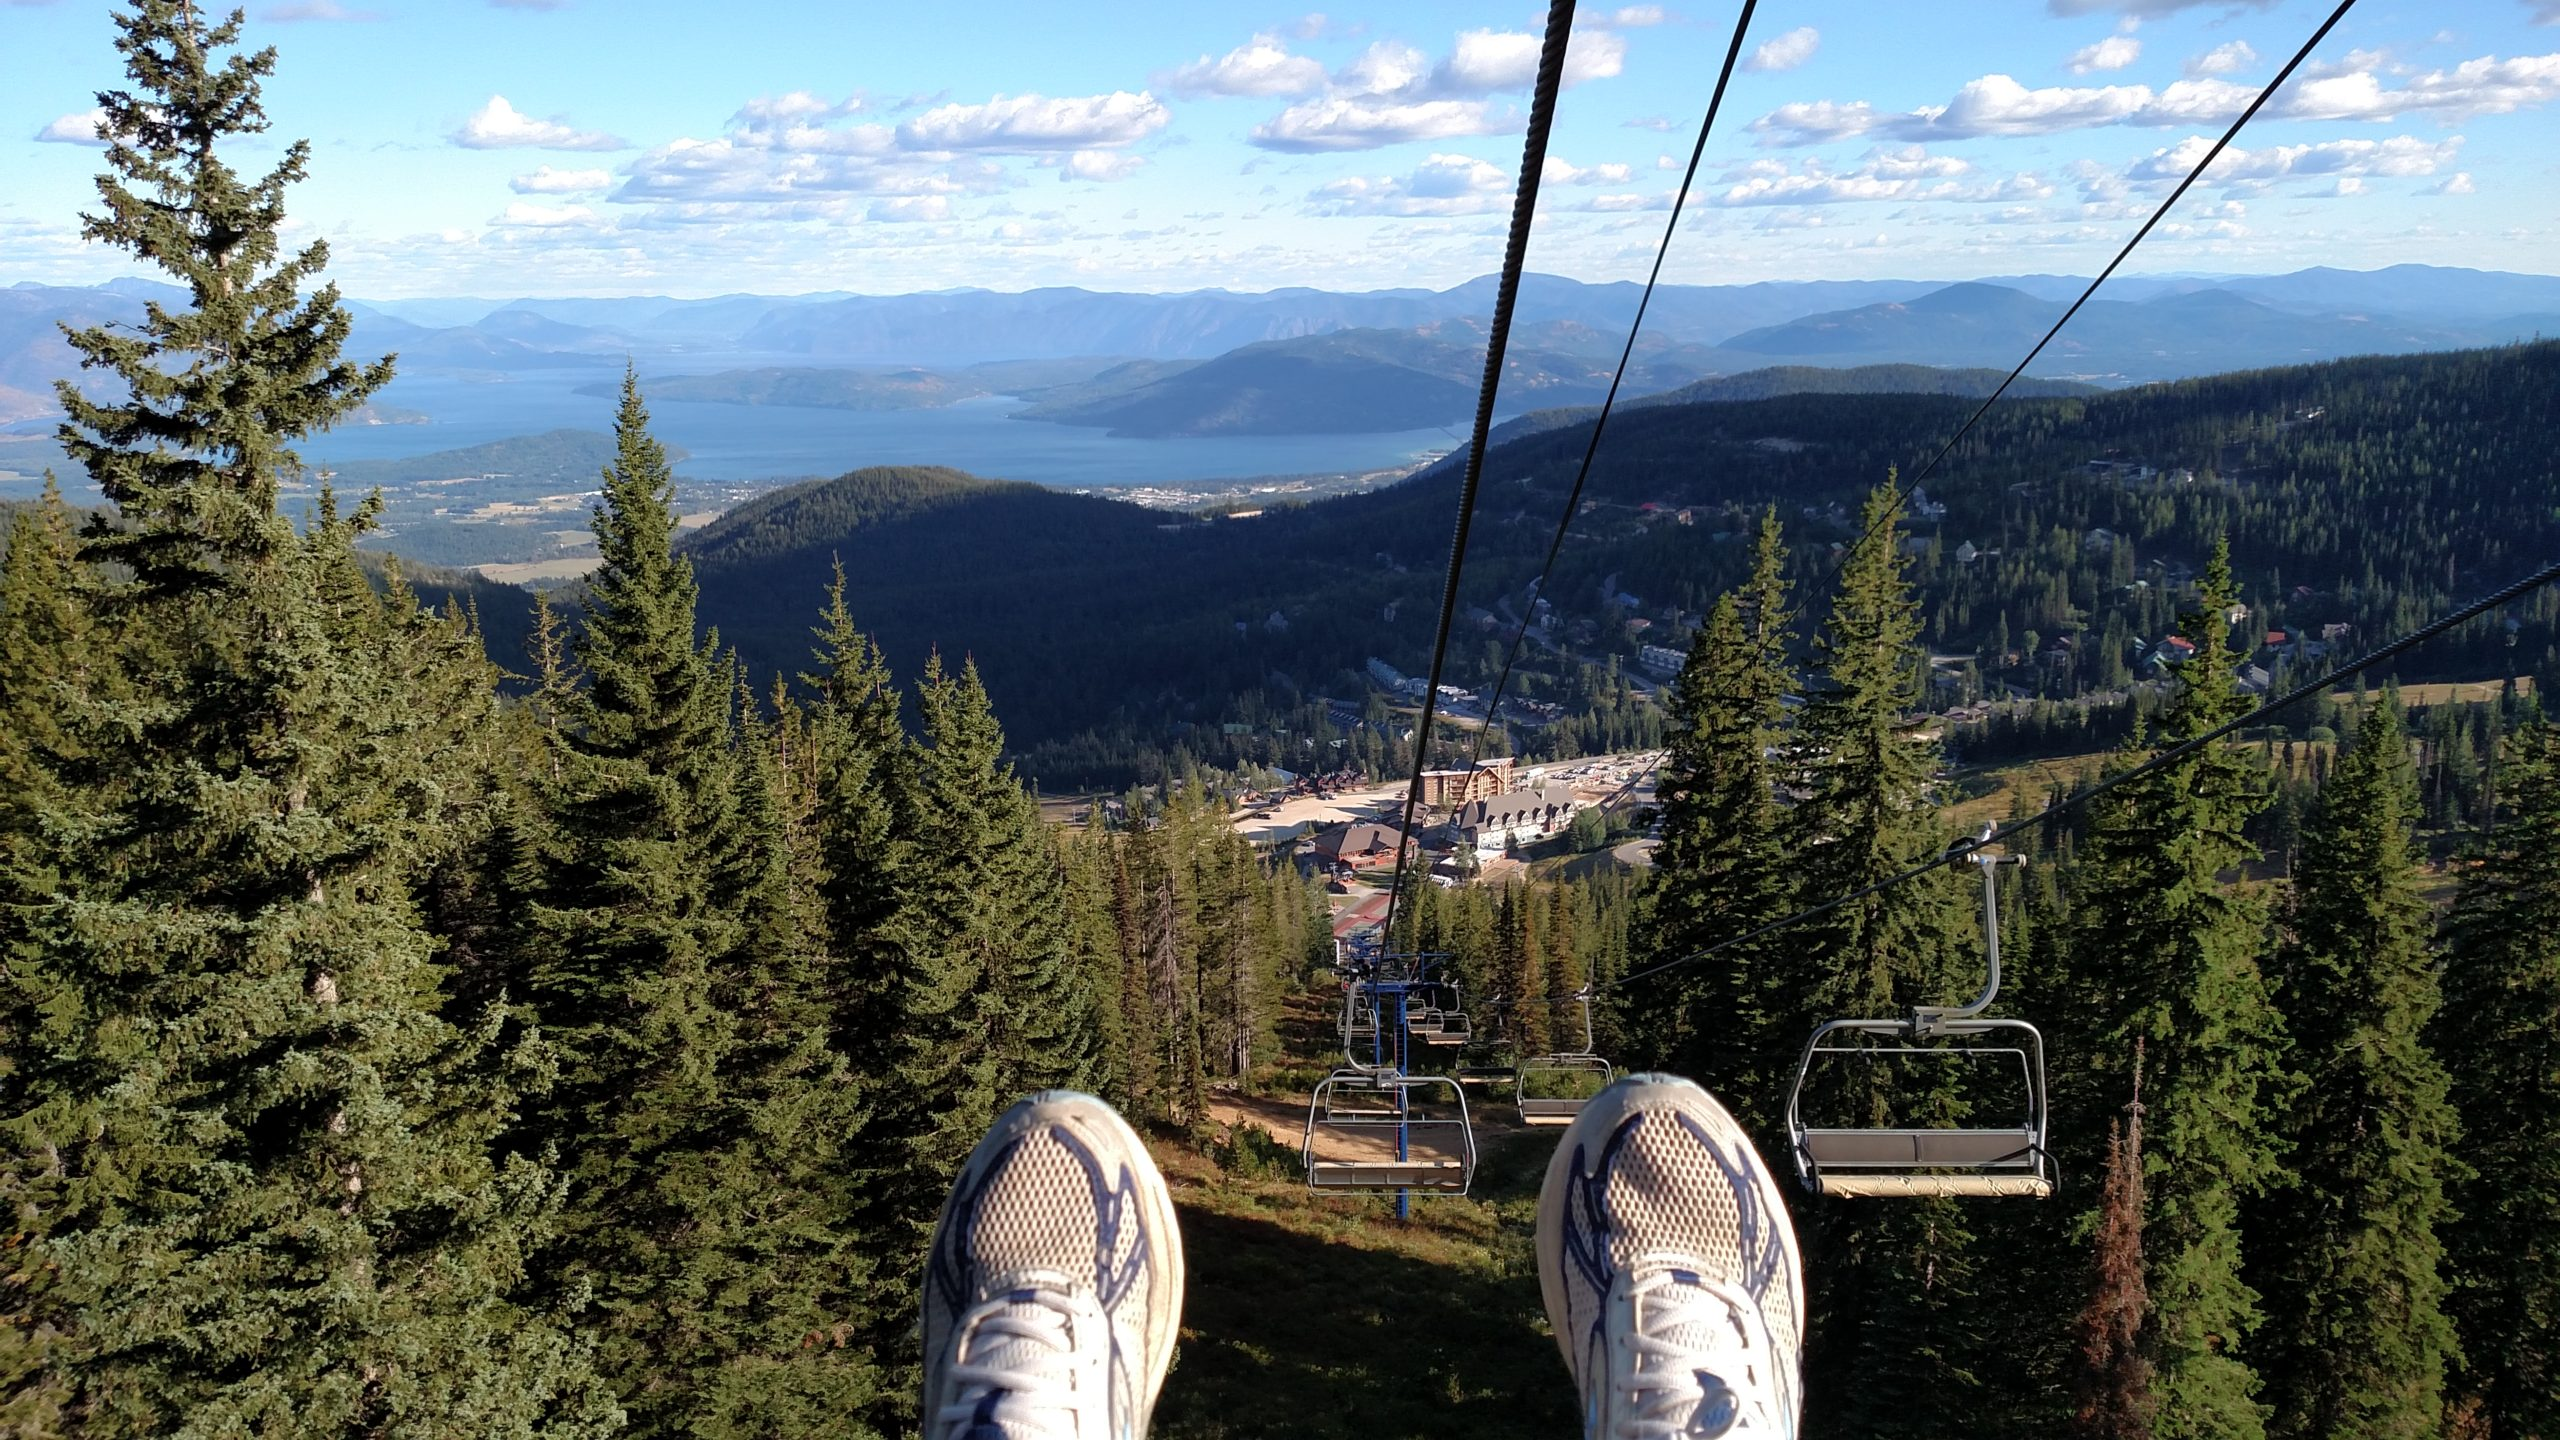 view from riding down a ski lift in summer